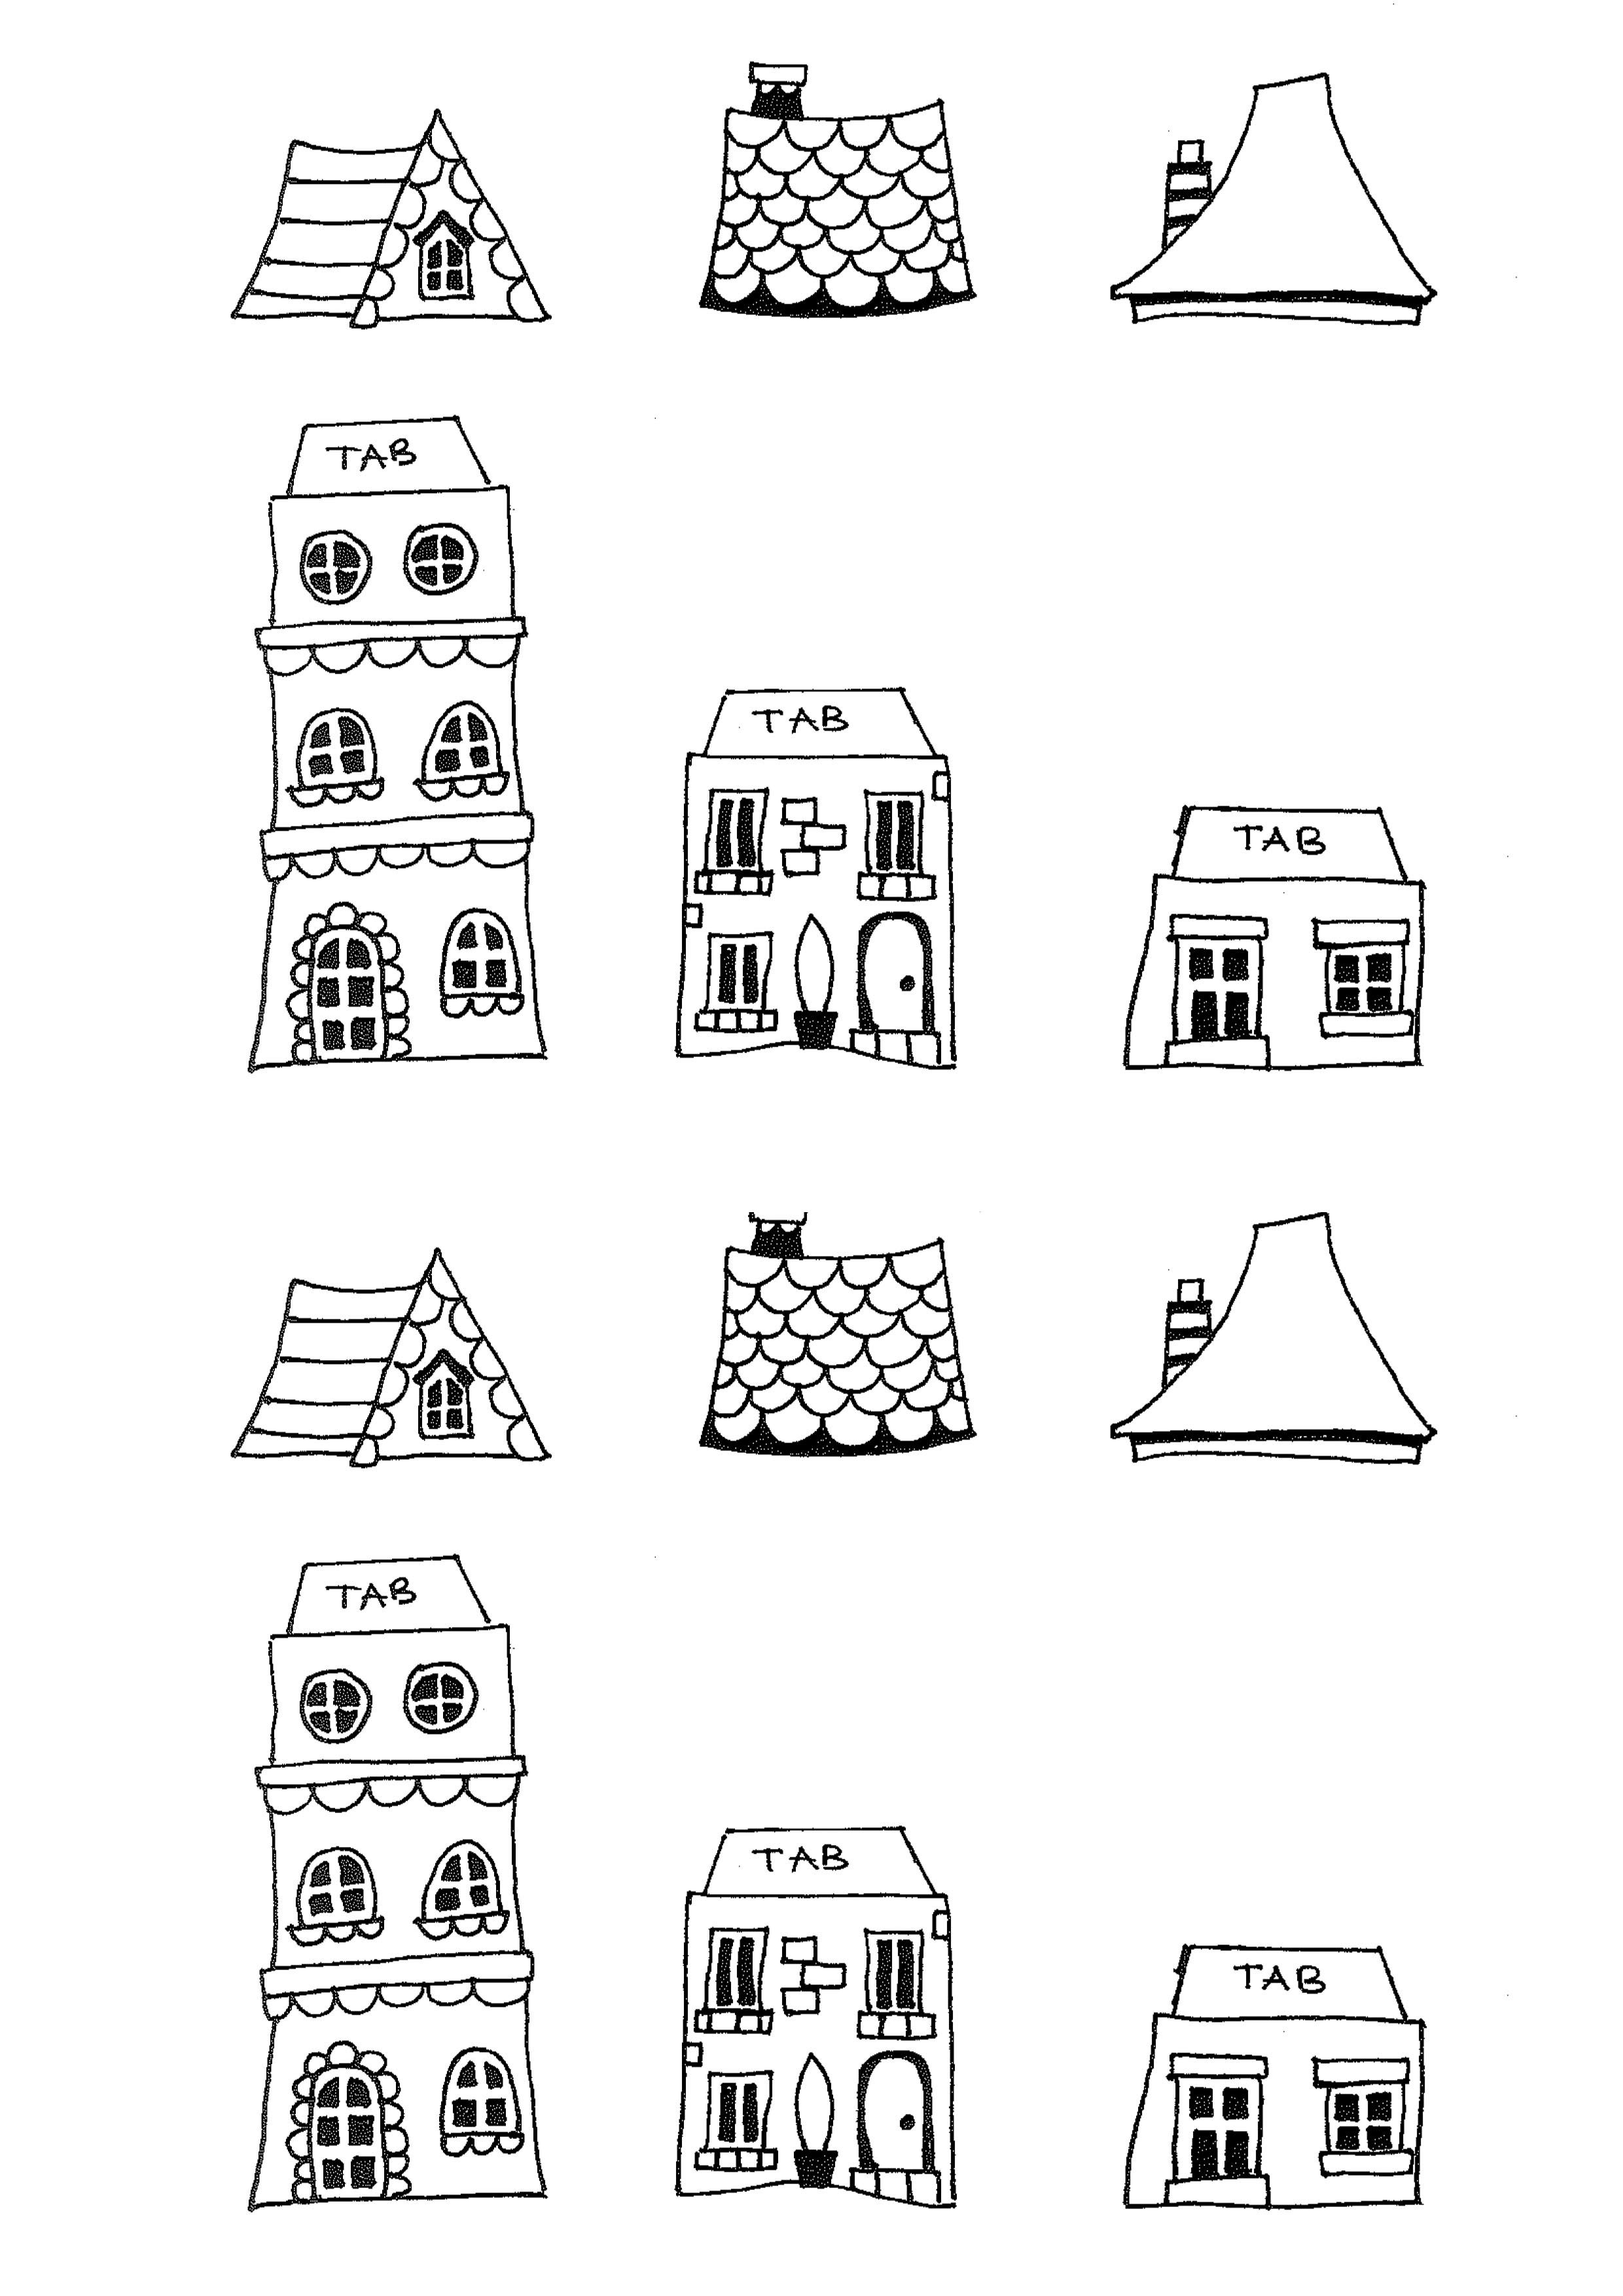 Free Printable House Templates   Doodles And Type - Free Printable Templates